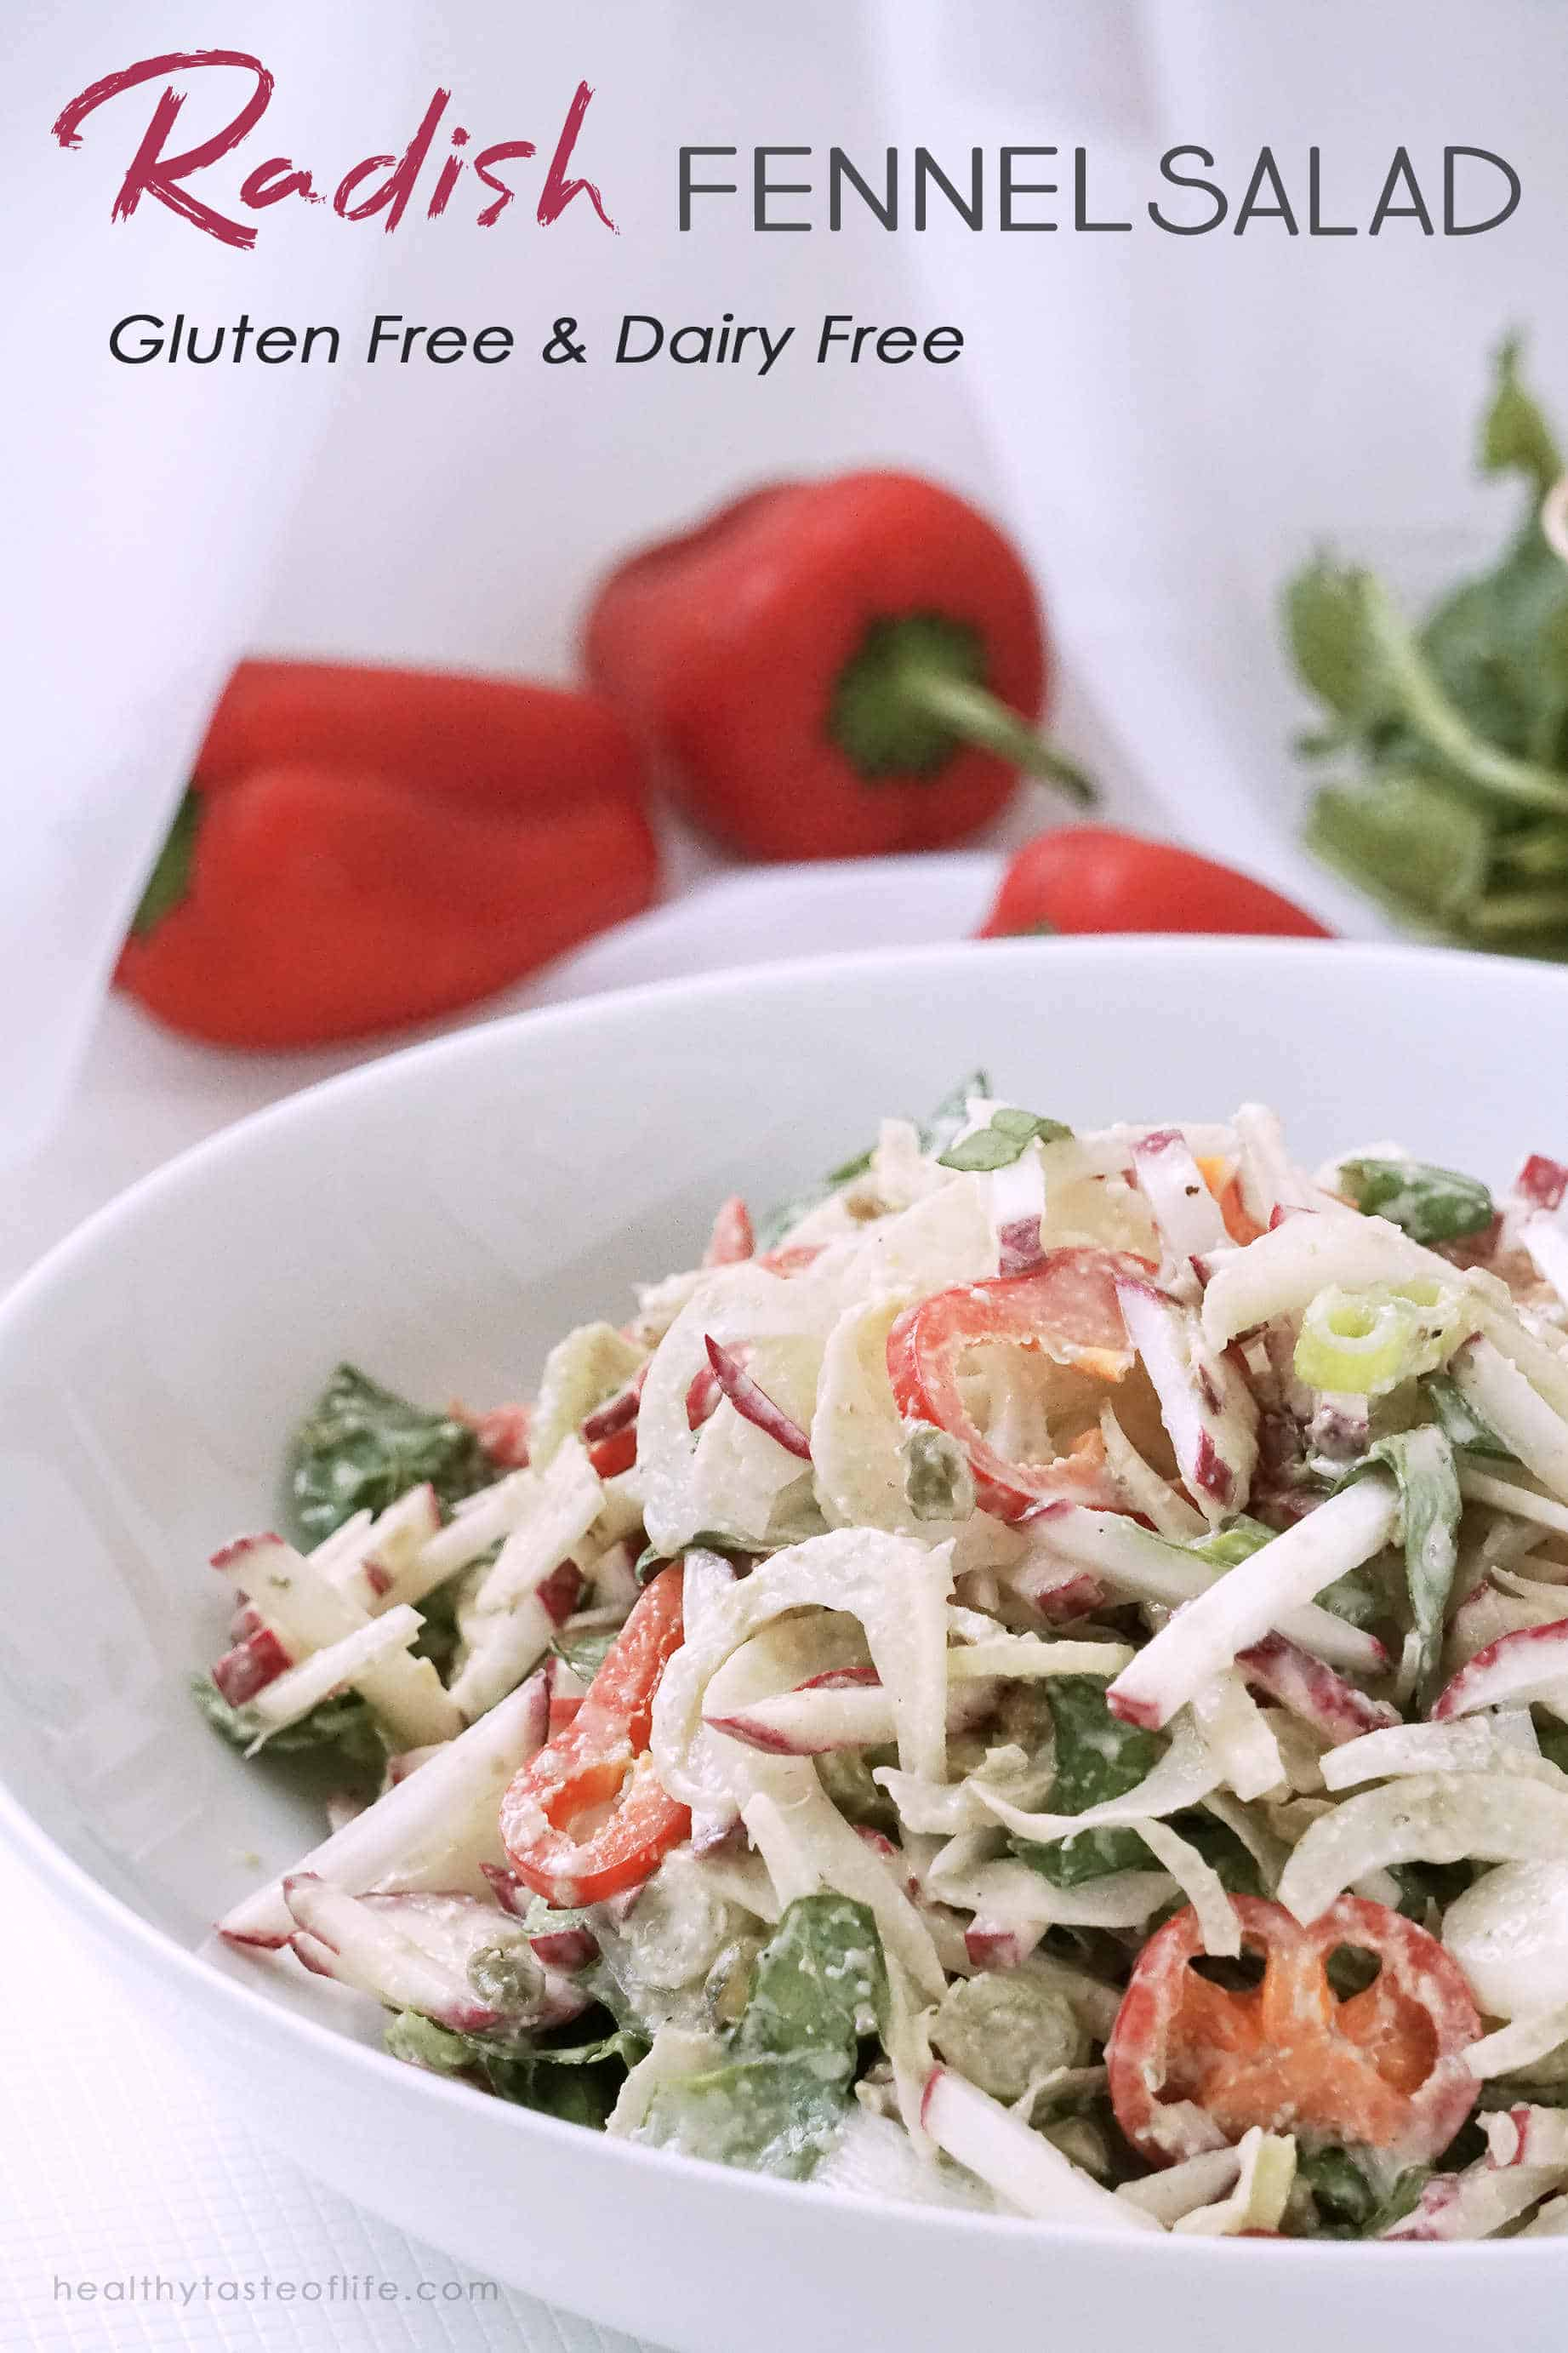 Radish salad with fennel and bell pepper (vegan, gluten free, dairy free) accompanied with a creamy dairy free homemade dressing. This healthy radish salad is made with whole fresh organic ingredients, suitable for whole 30, vegan, paleo and clean eating anti-inflammatory diets.